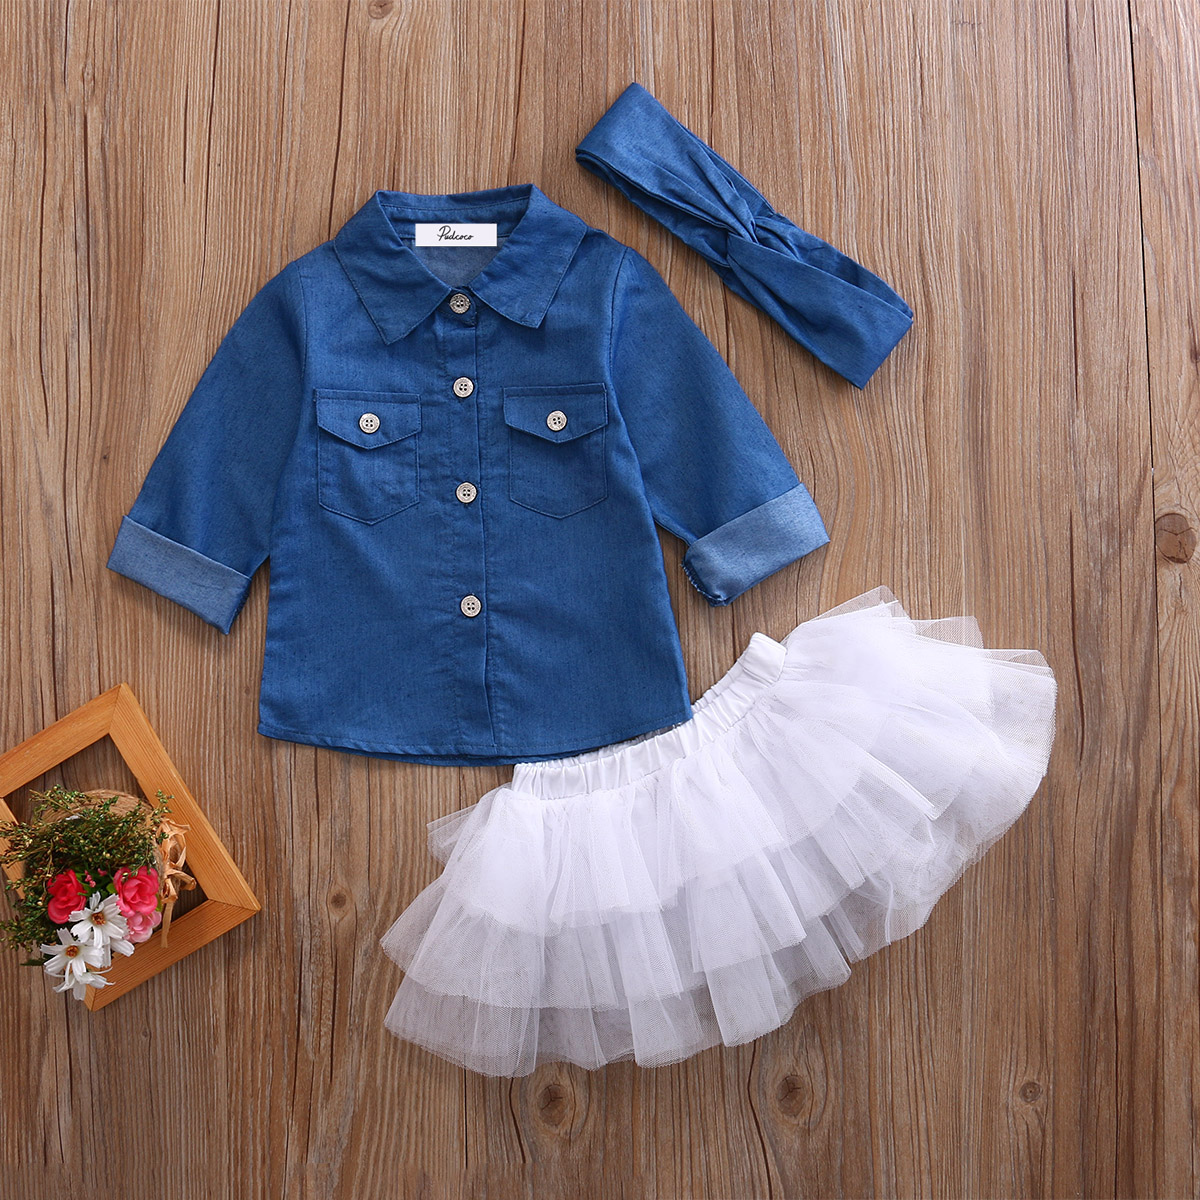 Kids Baby Girls Denim Tops T shirt+White Tutu Skirts+Headband 3pcs Outfits Clothes Set Summer Long Sleeve Children Clothing Sets 3pcs newborn baby girls bowknot clothes 2018 summer striped toddler kids clothing set t shirt shorts headband bebek giyim